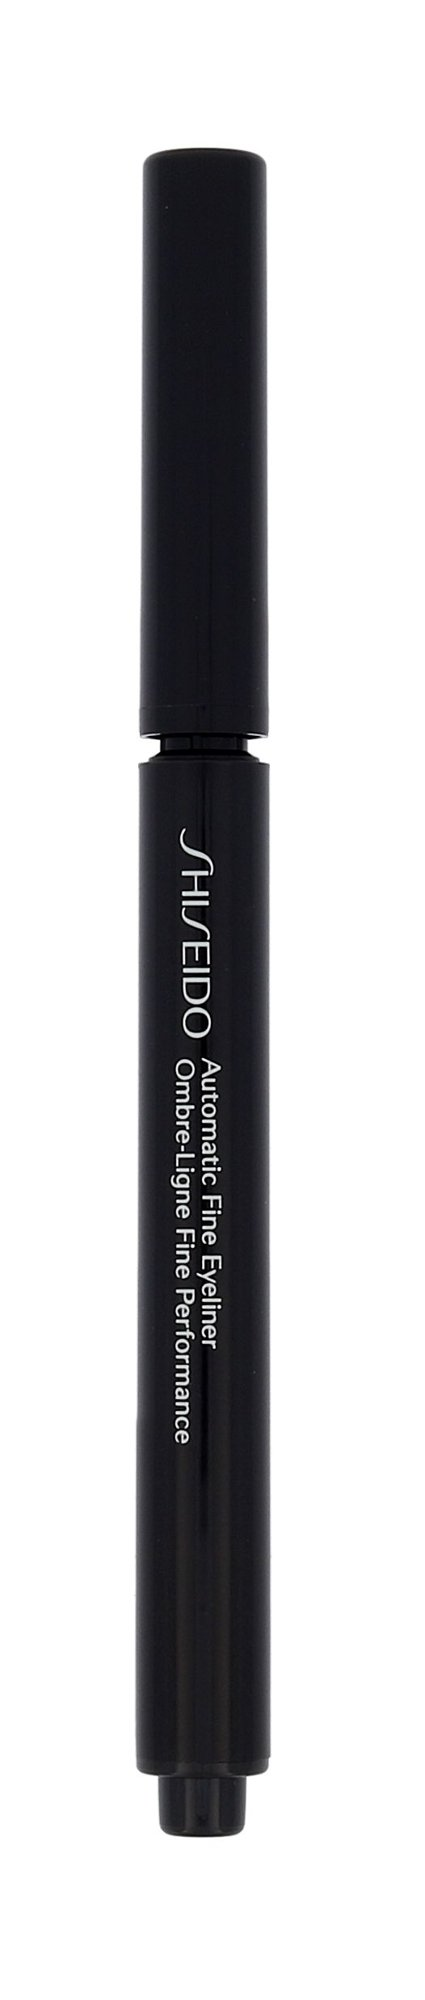 Shiseido Automatic Fine Eyeliner Cosmetic 1,4ml BR602 Brown